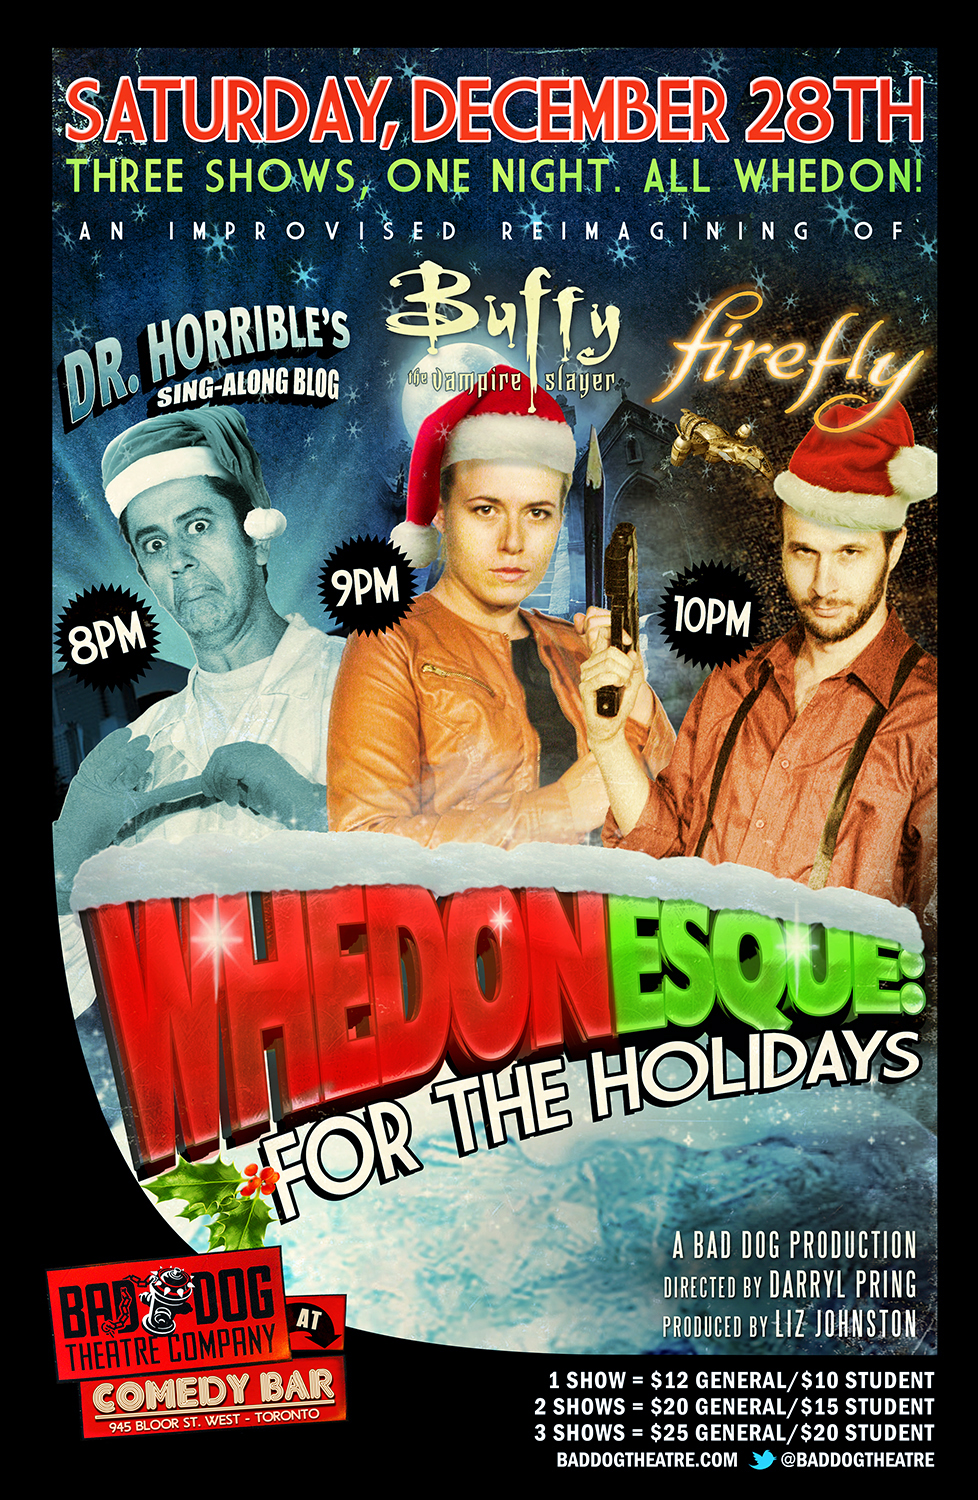 WHEDONESQUE_XMAS_POSTER.jpg